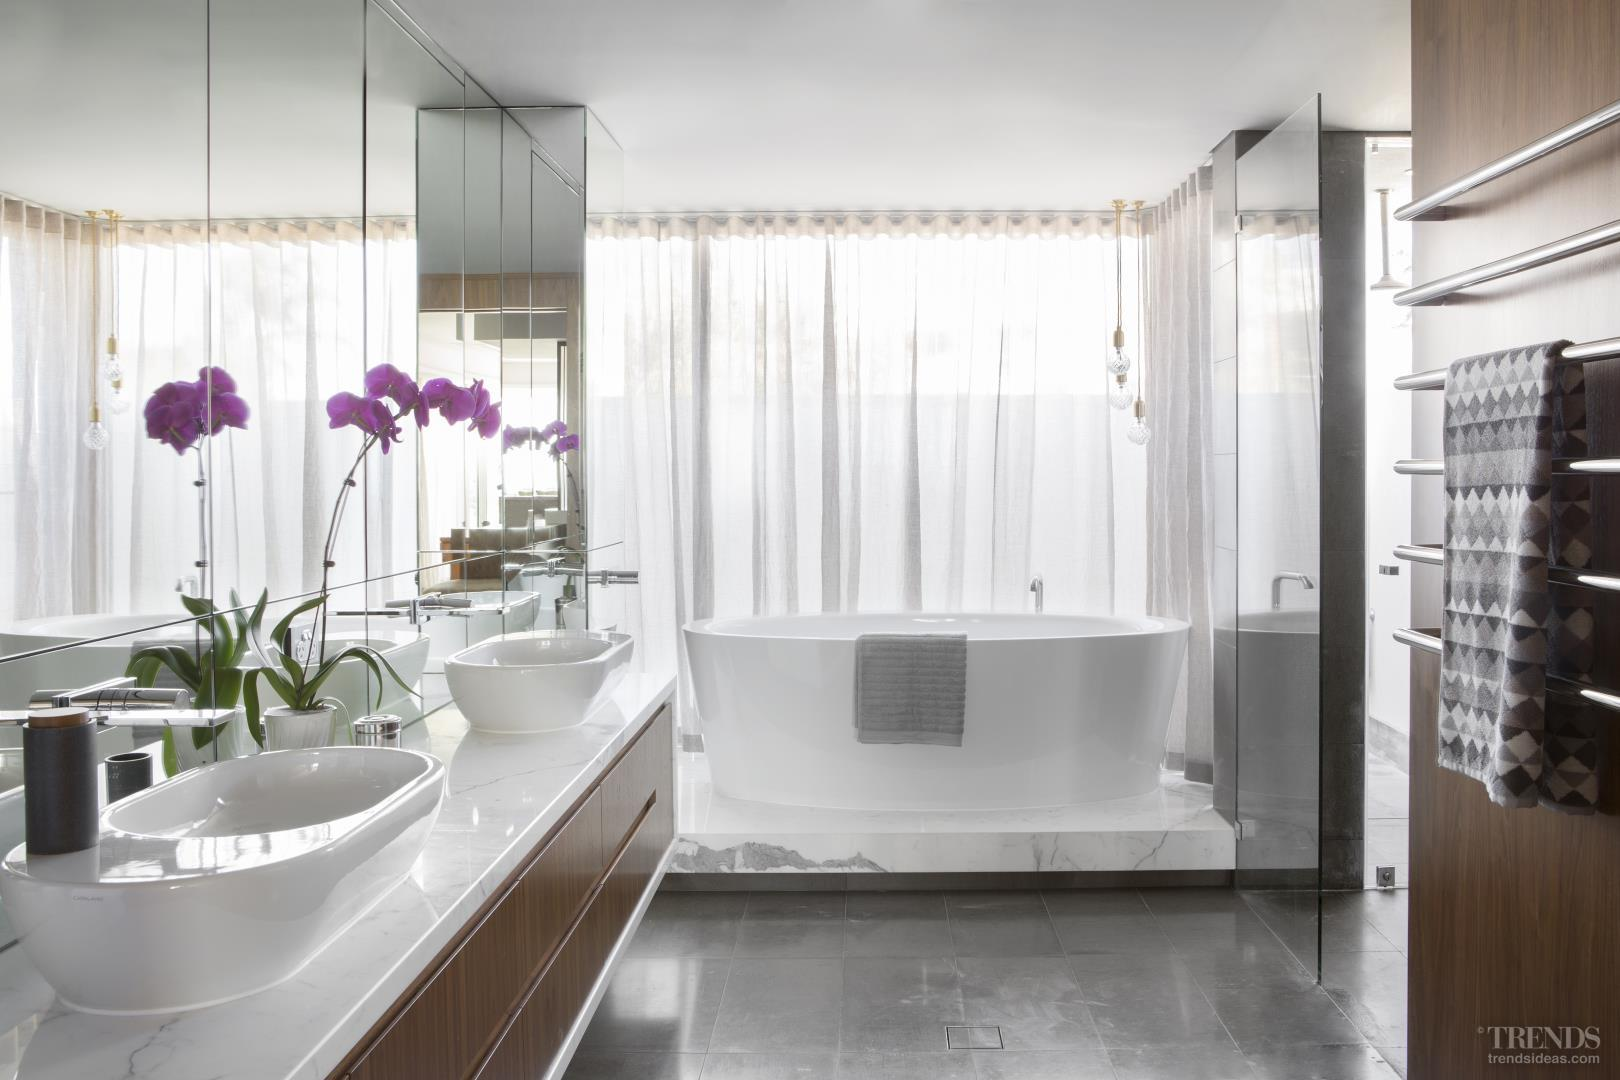 Upmarket bathroom suite with natural materials and freestanding tub